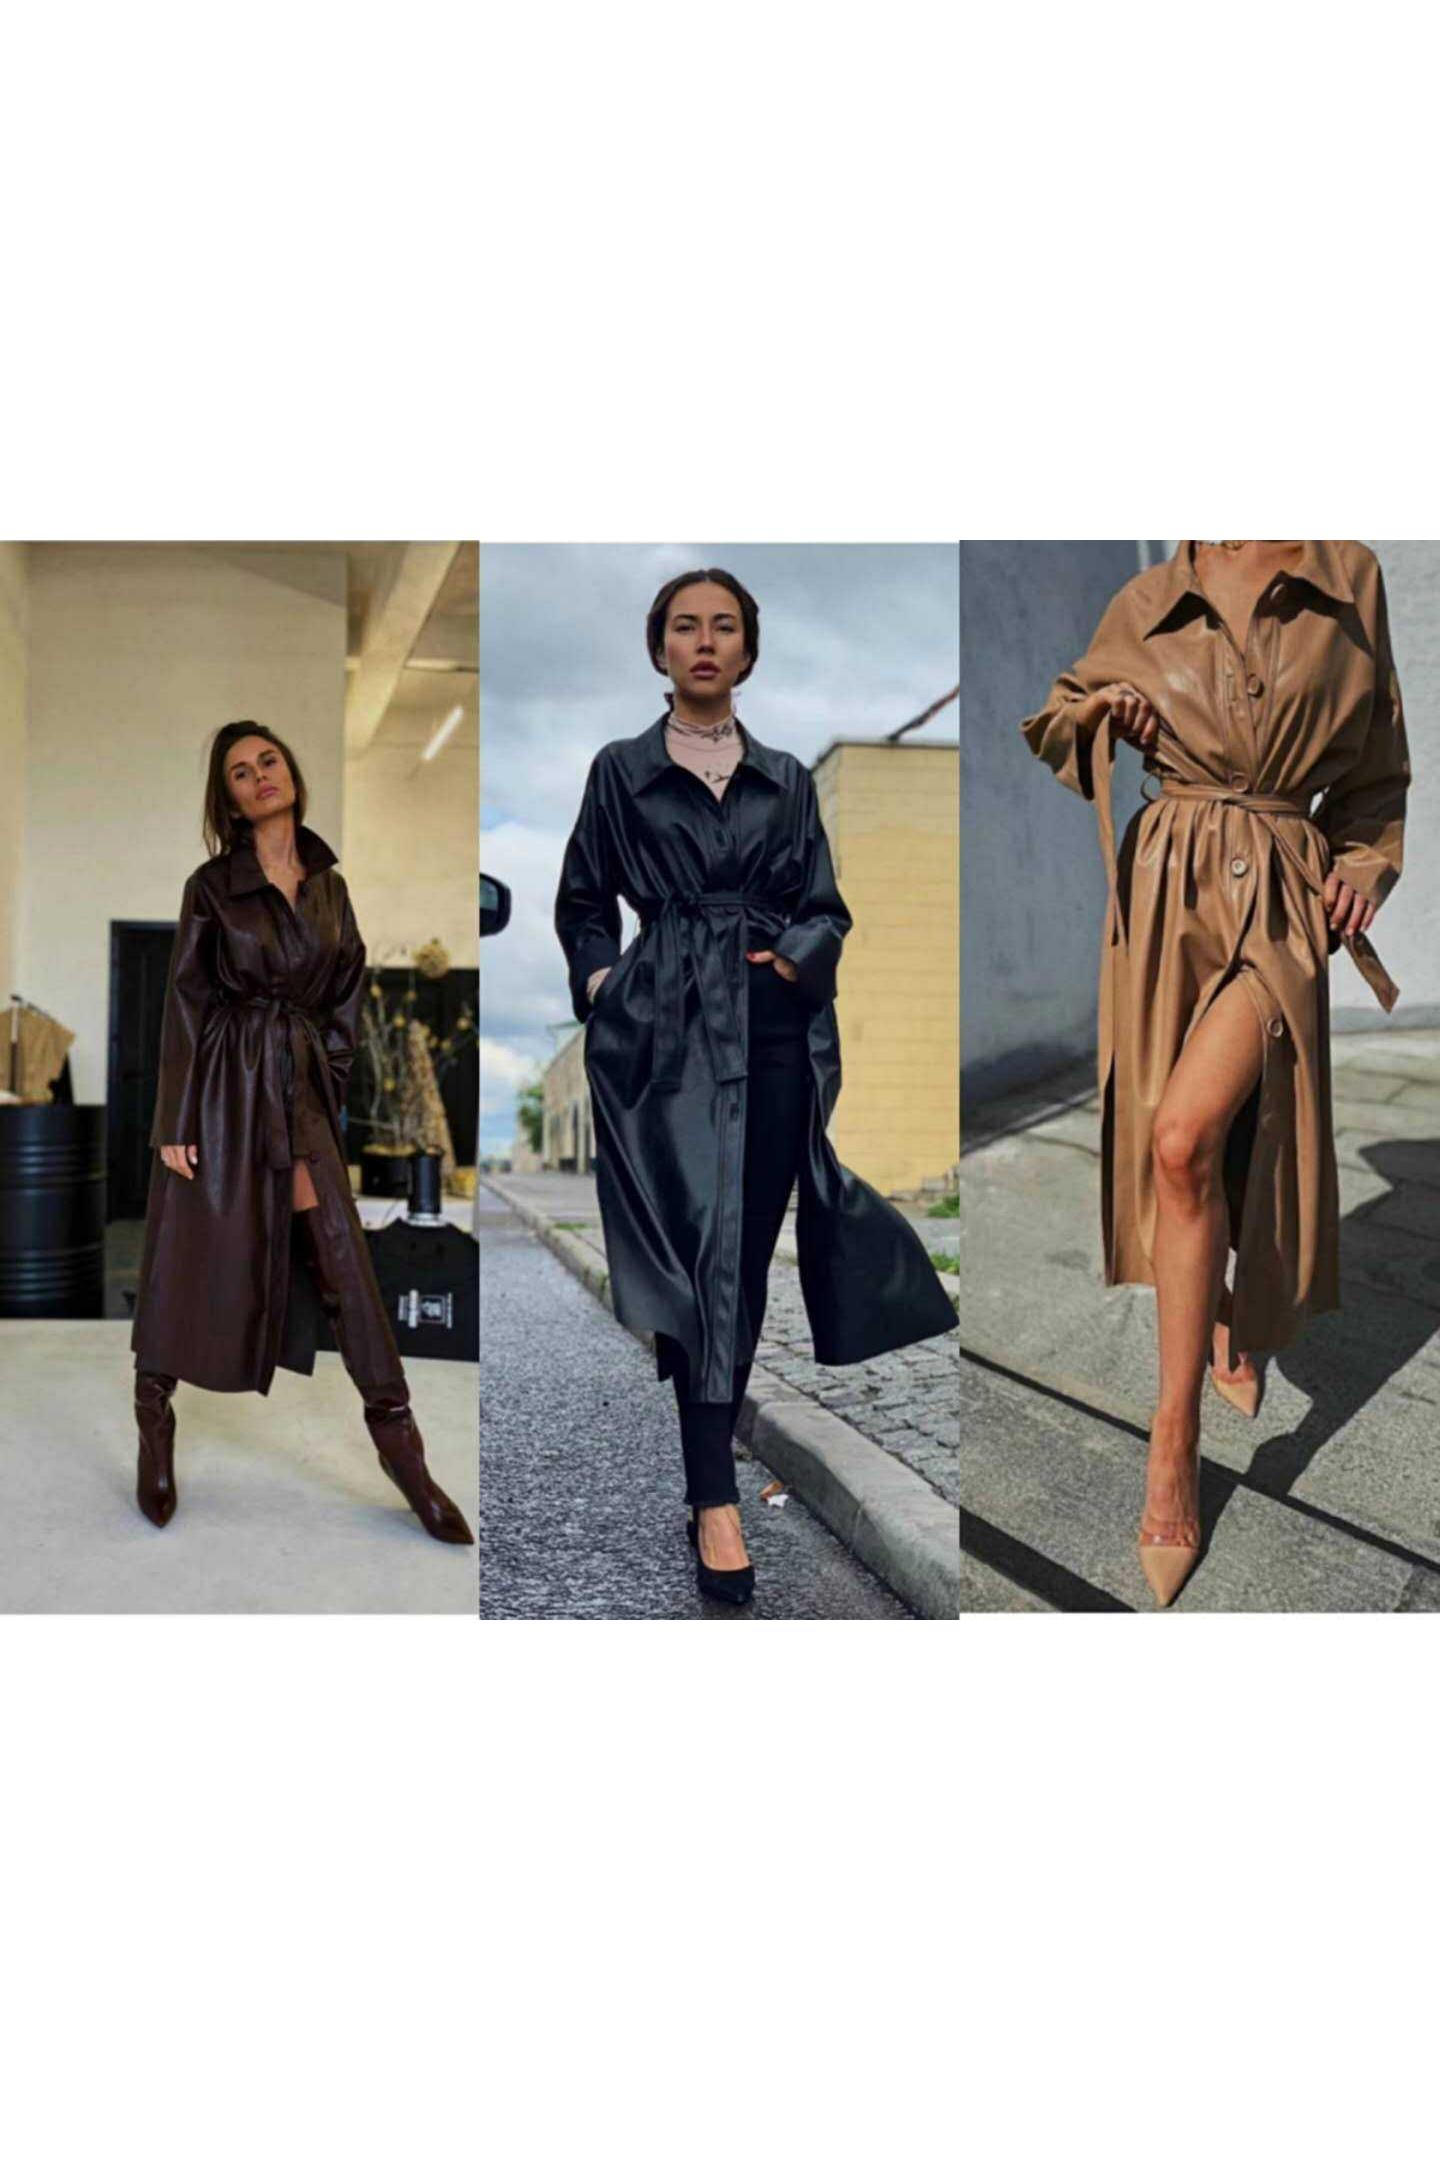 Jacket Single Breasted Sashes Women Real Sale Jaqueta De Couro Feminino 2020 Autumn Women's New Personality Long Coat Loose Pu enlarge